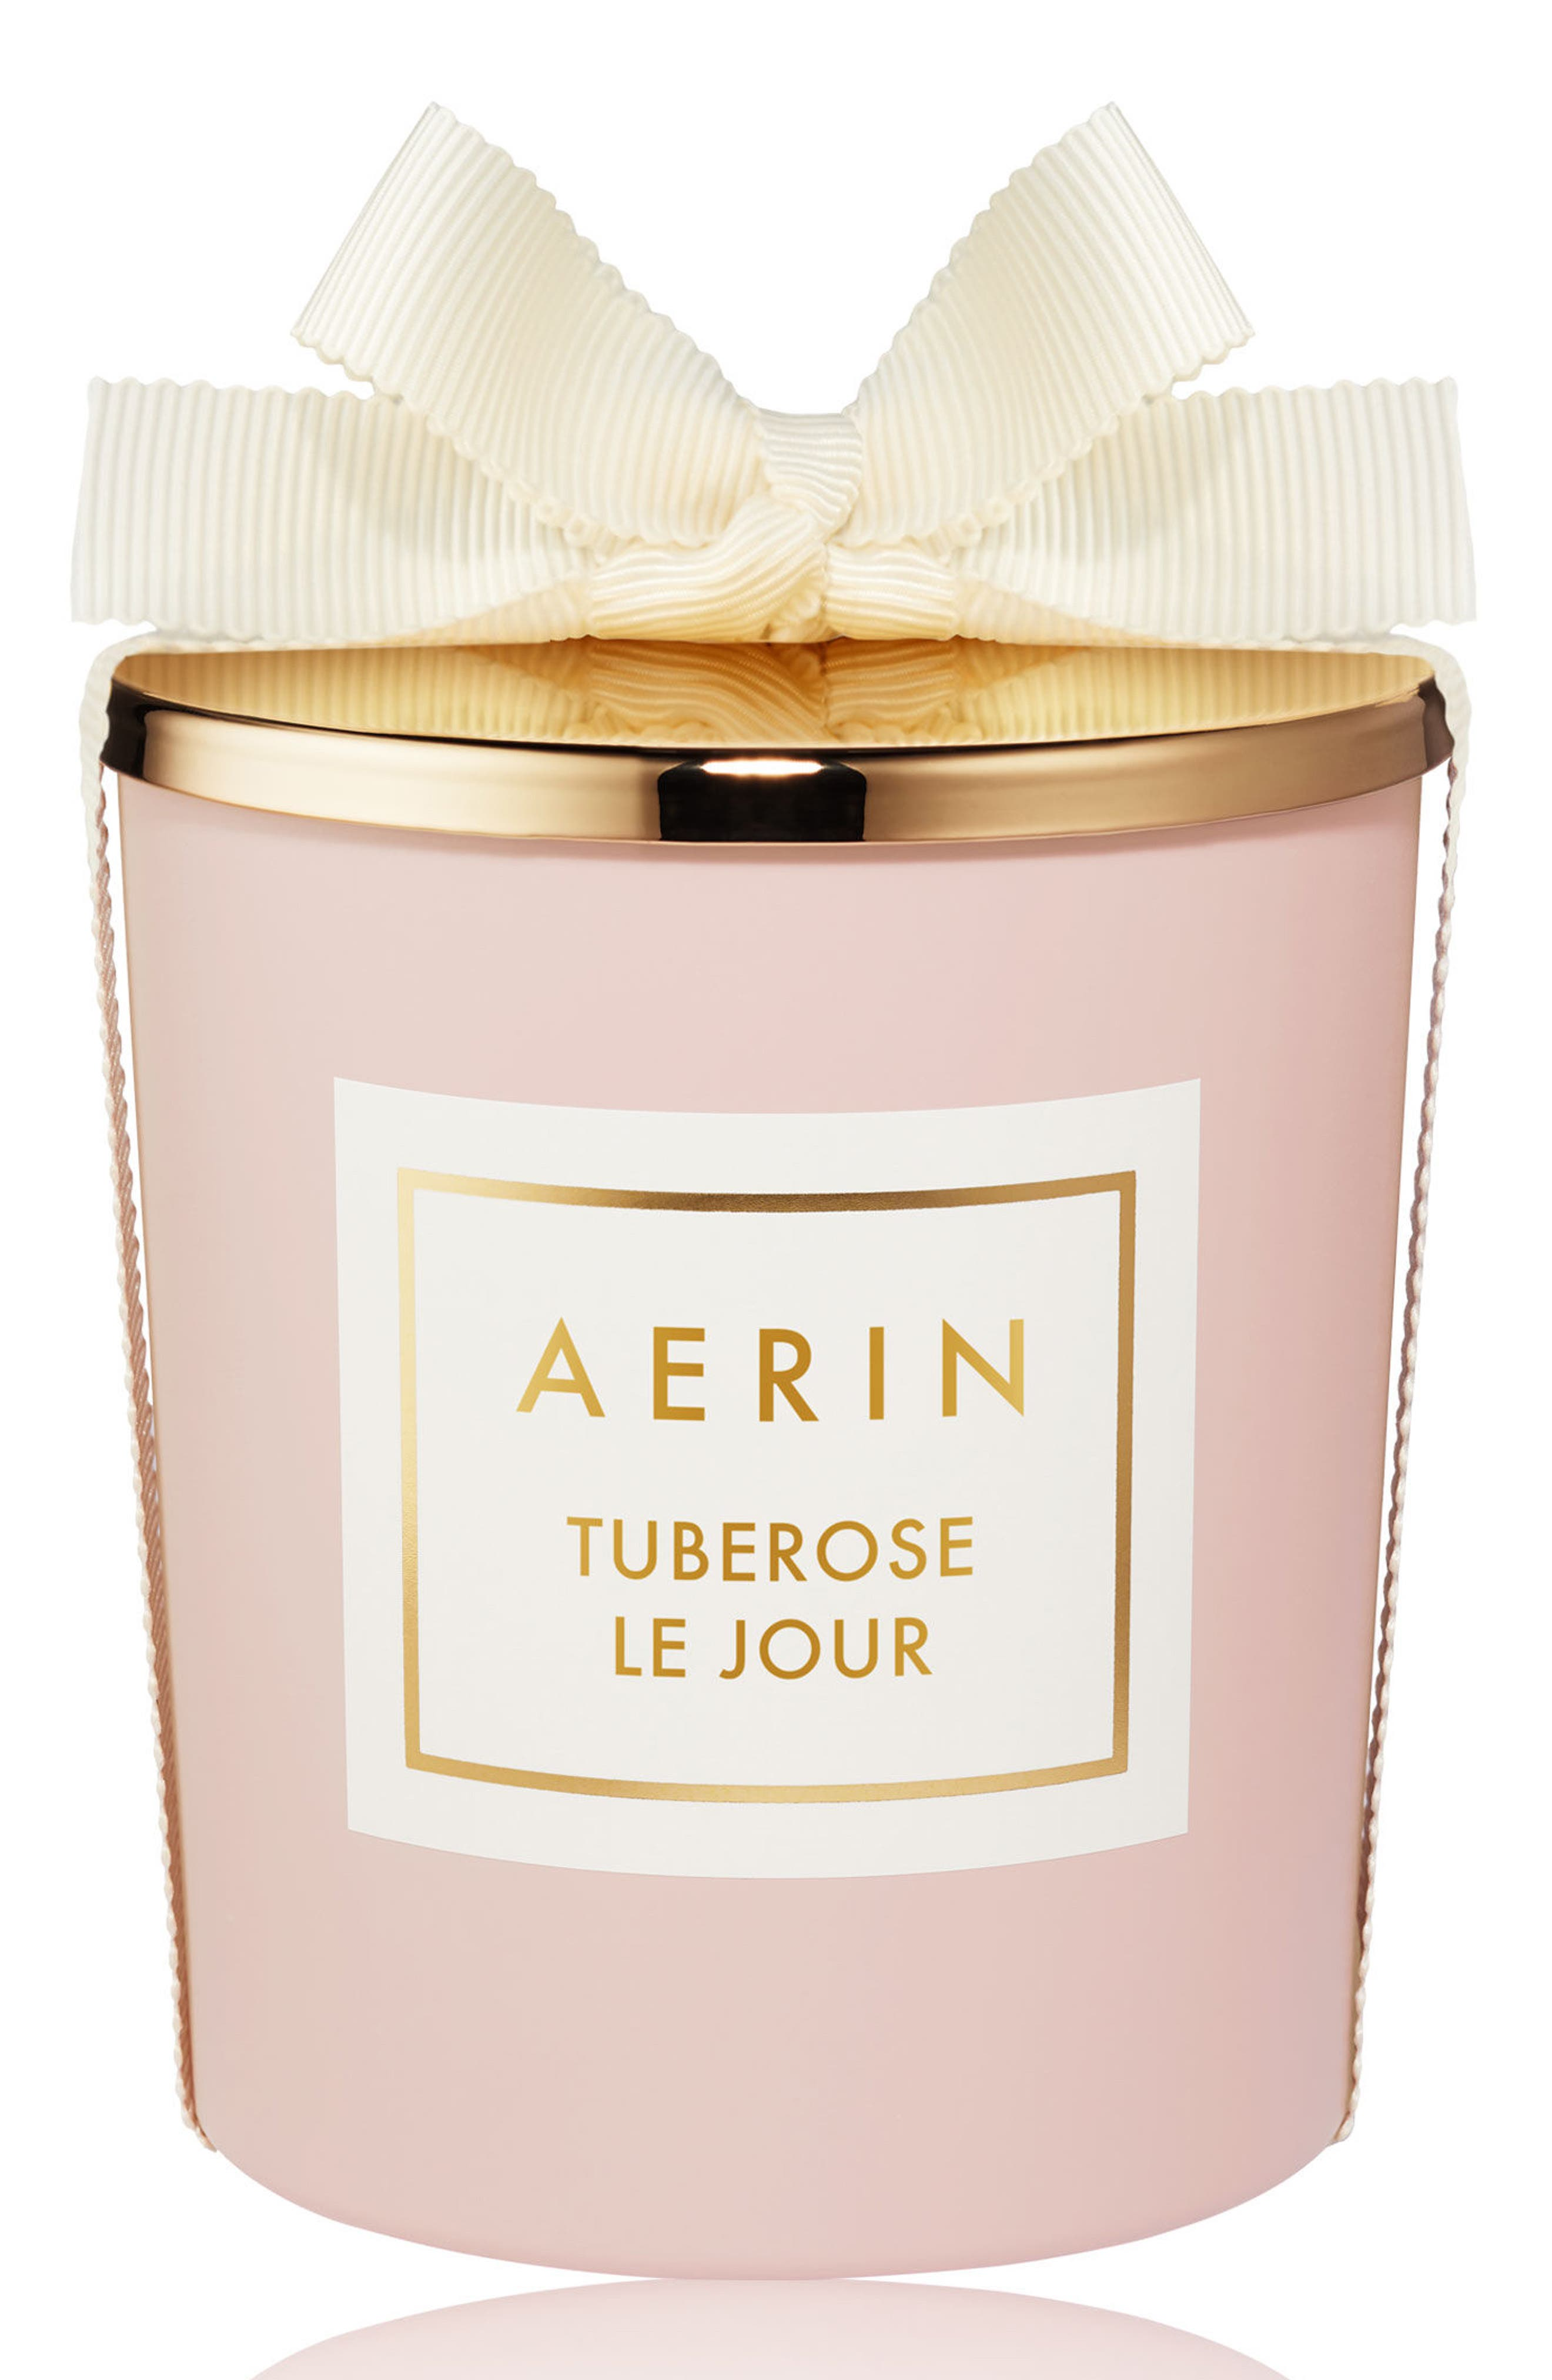 AERIN Beauty Tuberose Le Jour Candle